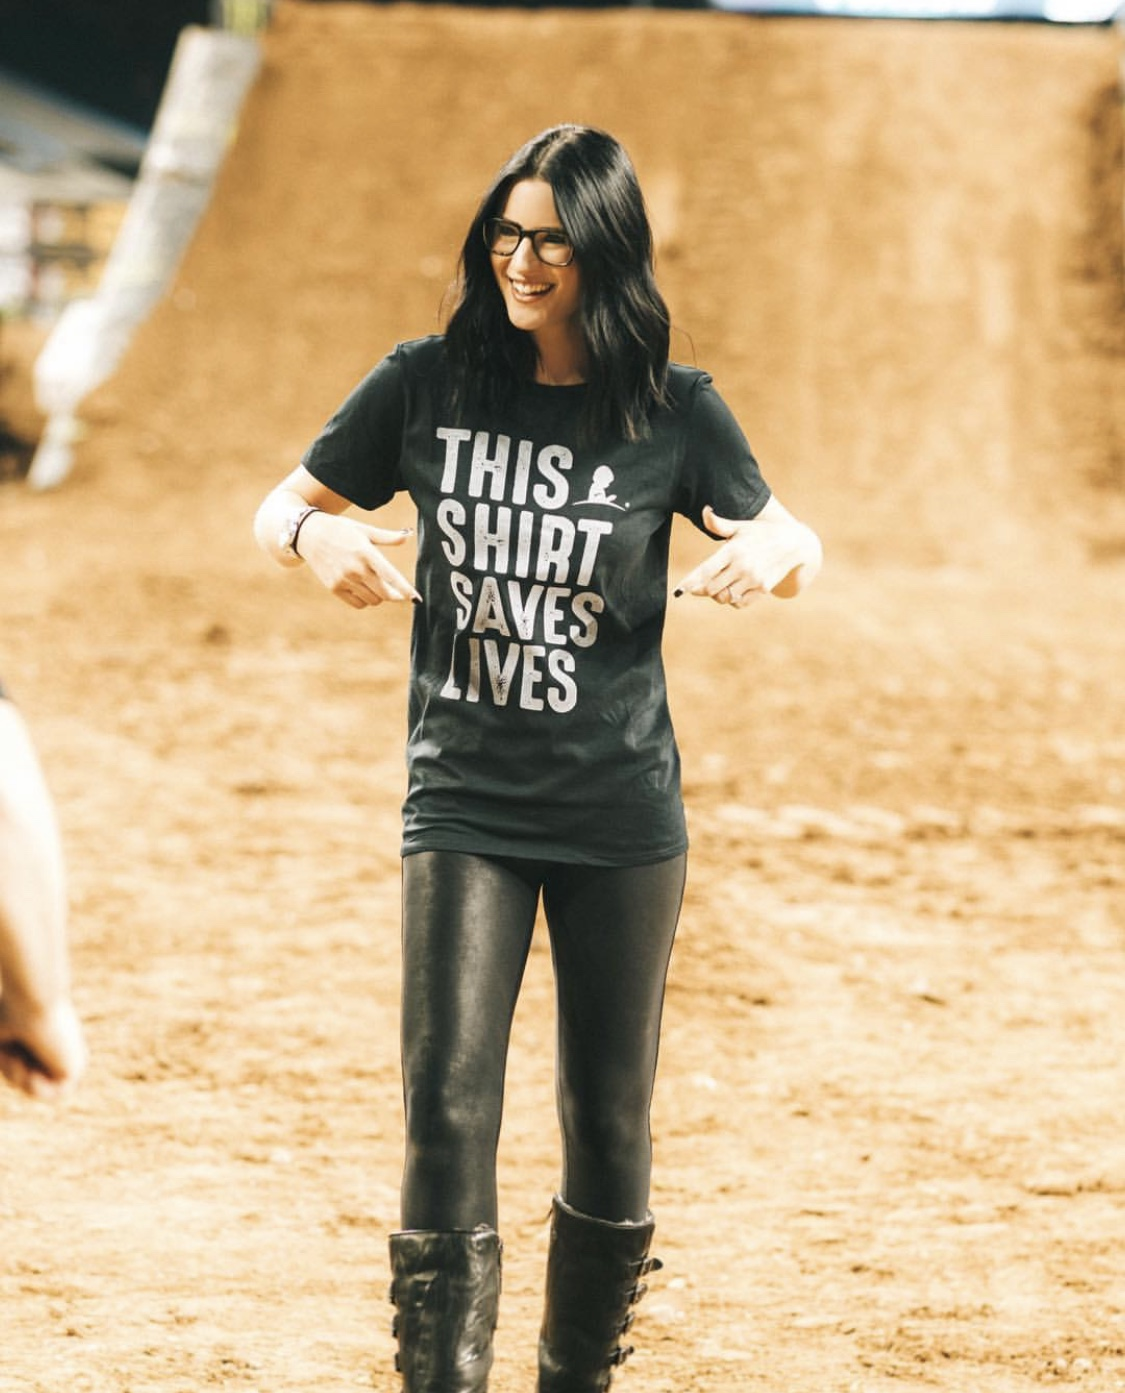 This Shirt Saves Lives by popular Austin lifestyle blog, Dressed to Kill: image of a woman wearing a St. Jude's This Shirt Saves Lives t-shirt and at a supercross venue.